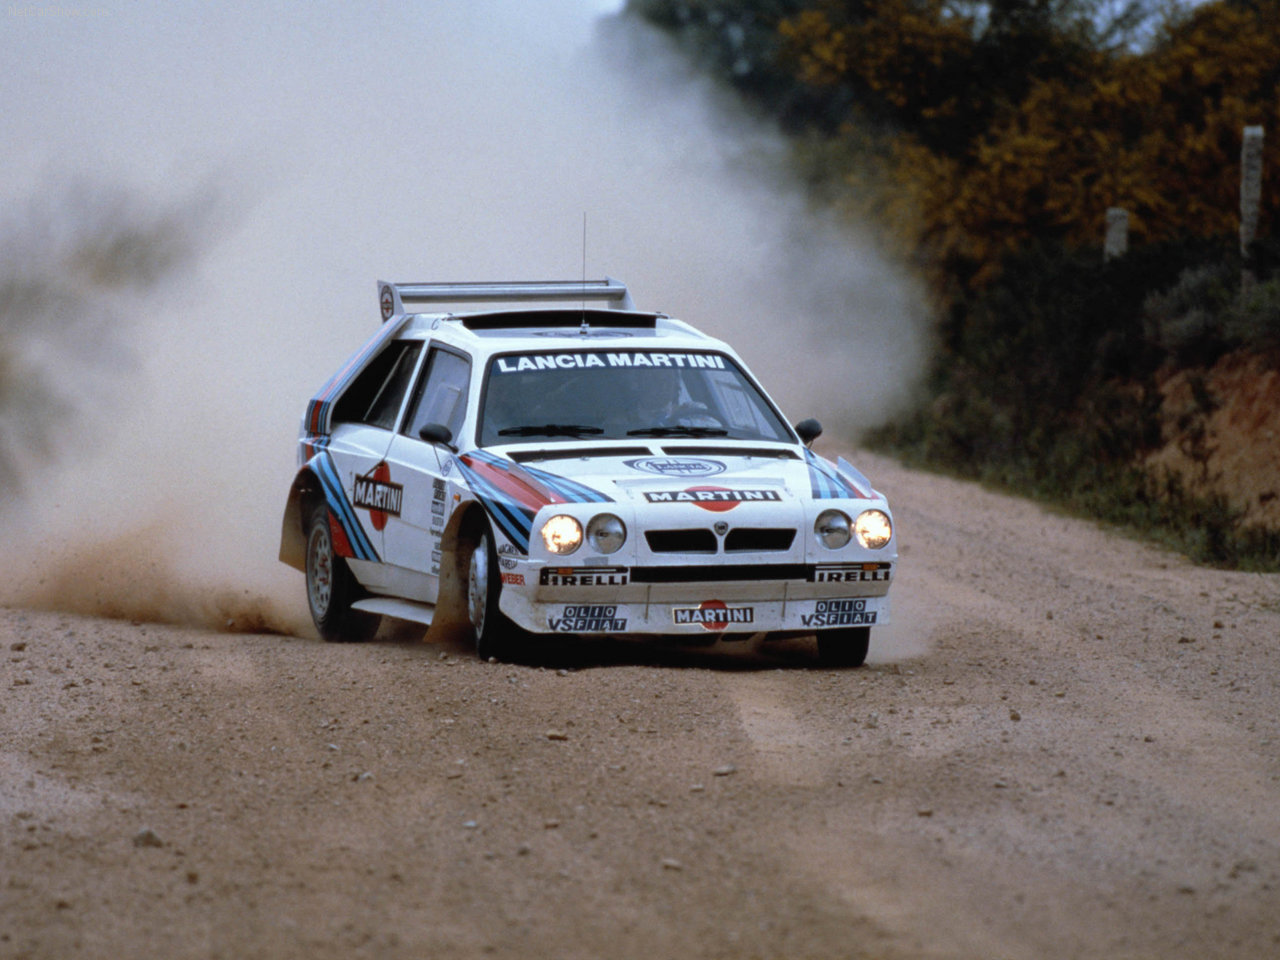 Lancia Delta S4 Group B rally car